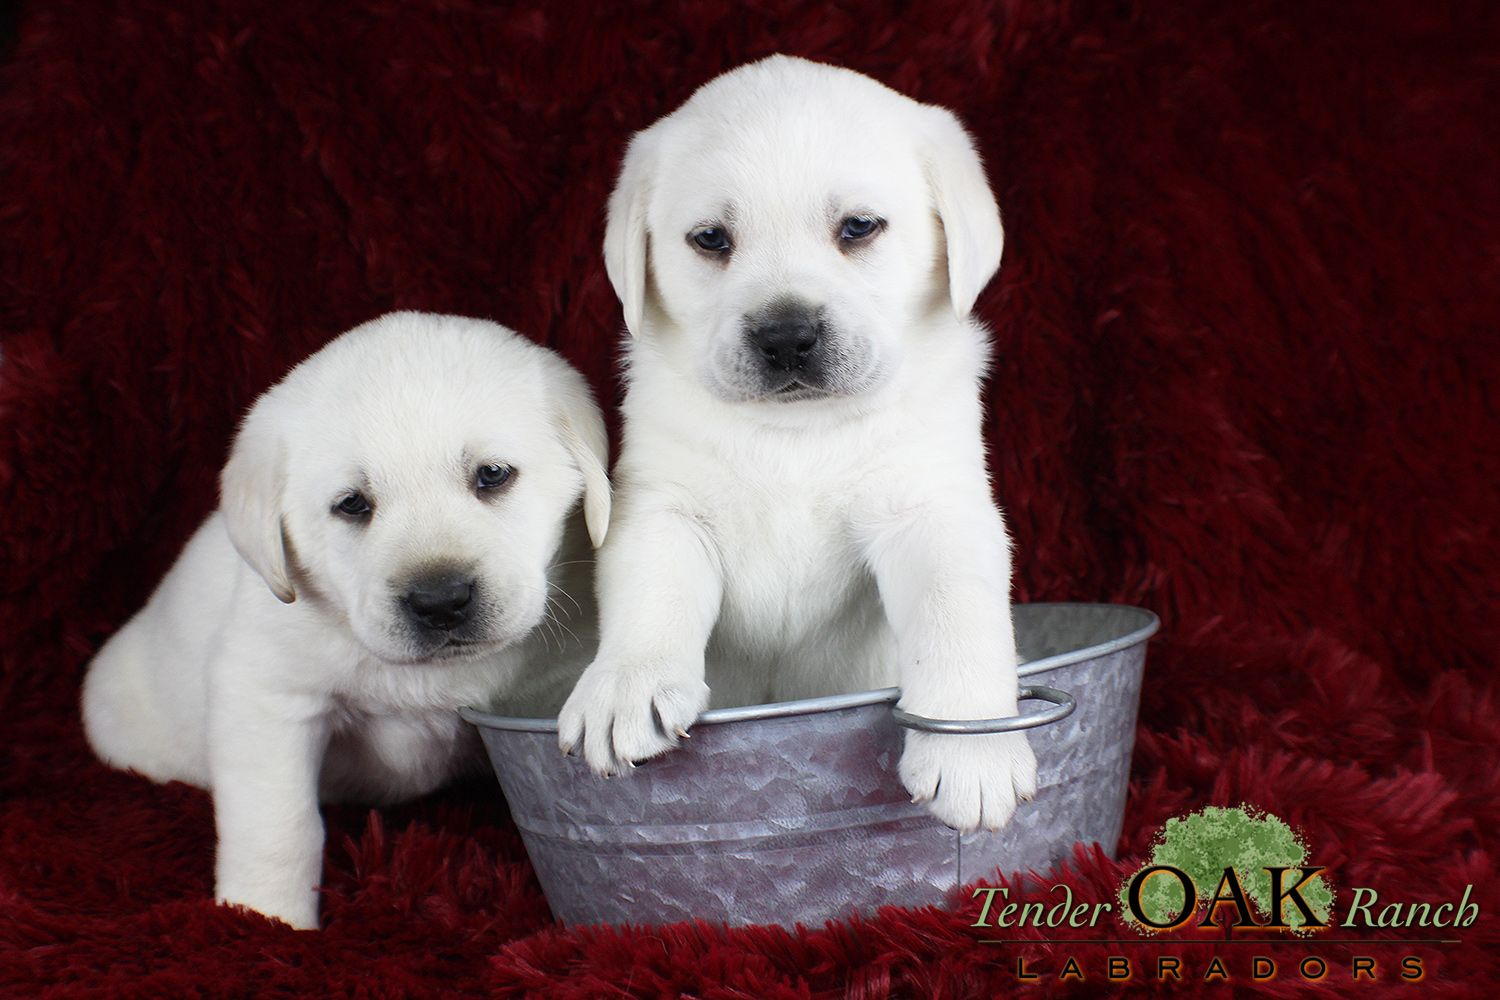 Labrador Retriever For Pet Adoption Labrador Puppy Labrador Puppies For Sale Yellow Labrador Puppy